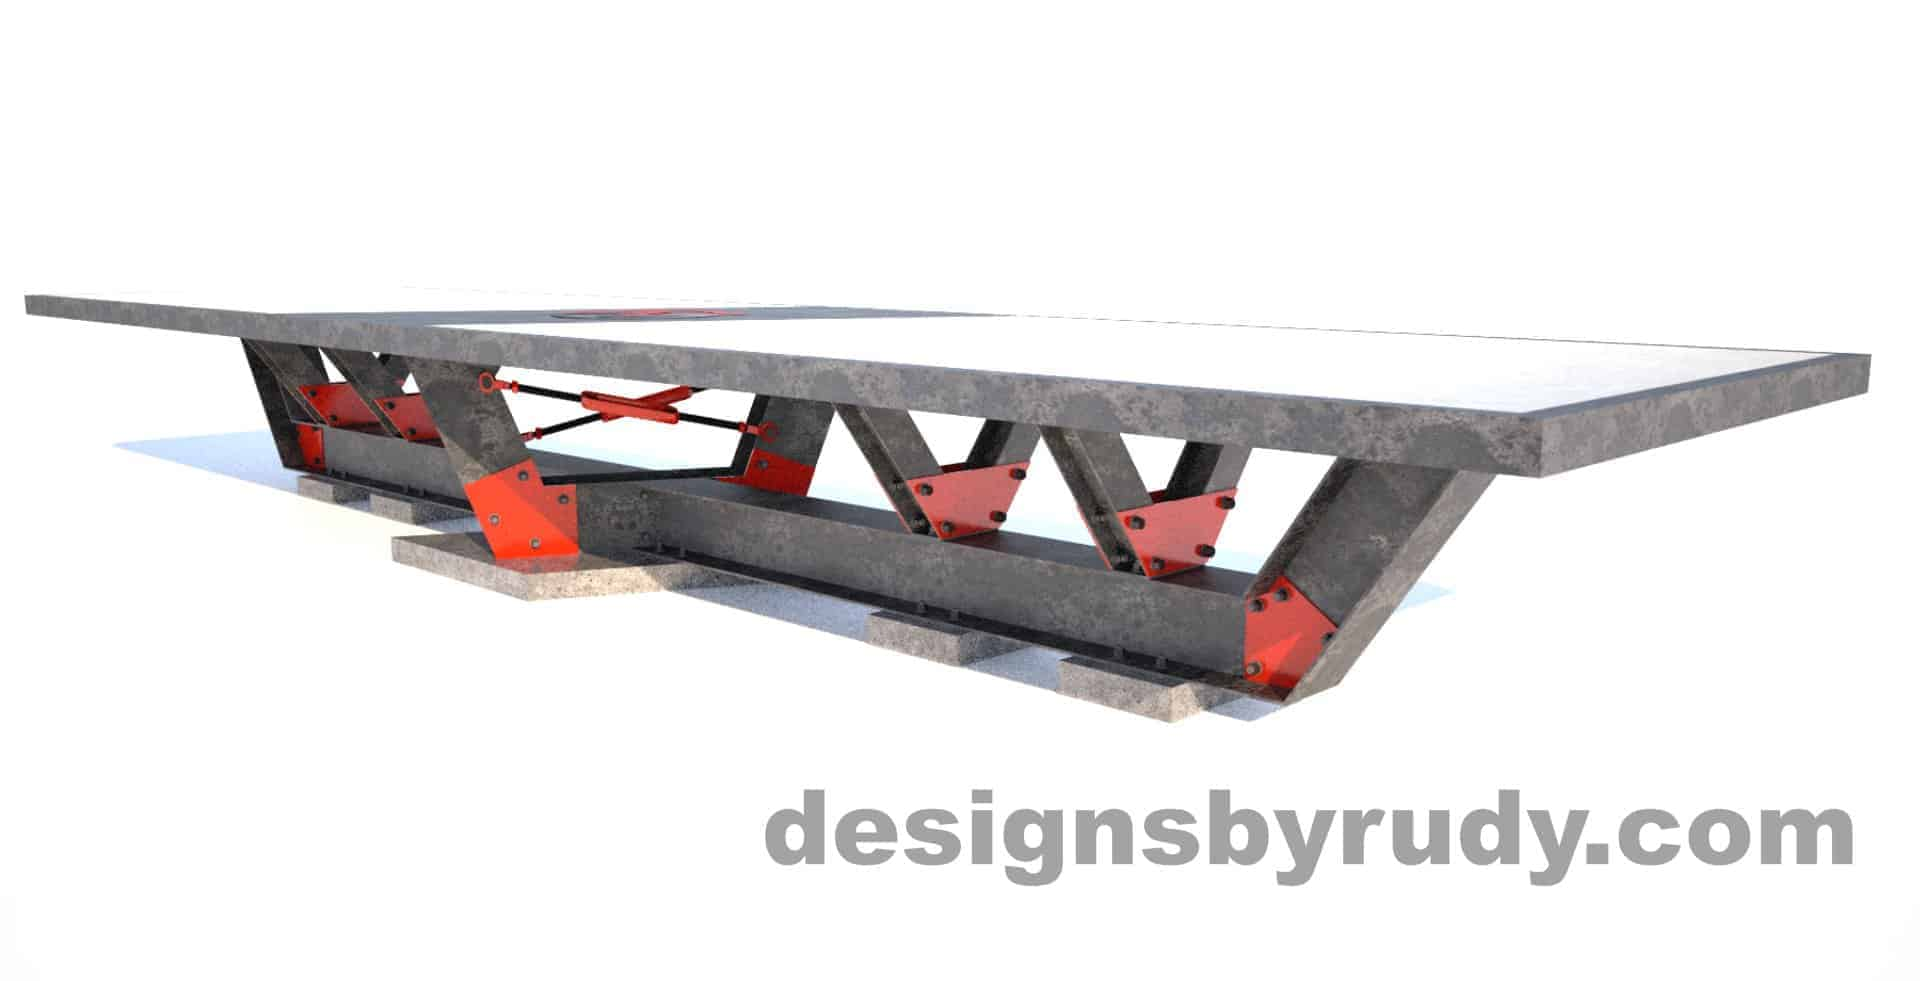 Steel base concrete top conference table design and fabrication by Designs by Rudy (3)